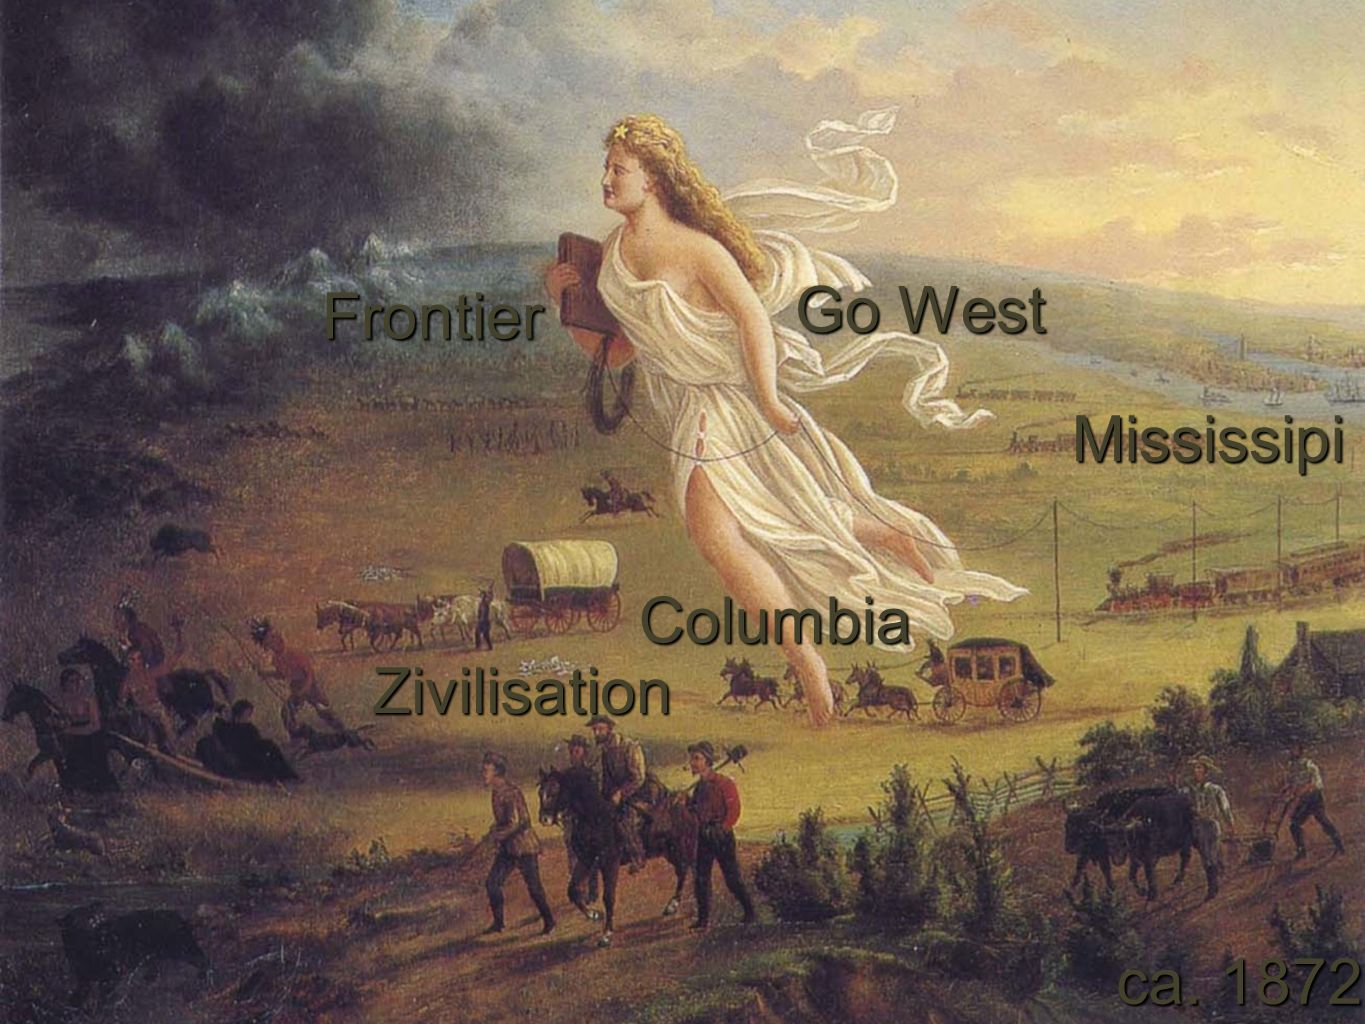 Go West Frontier Mississipi Columbia Zivilisation ca. 1872